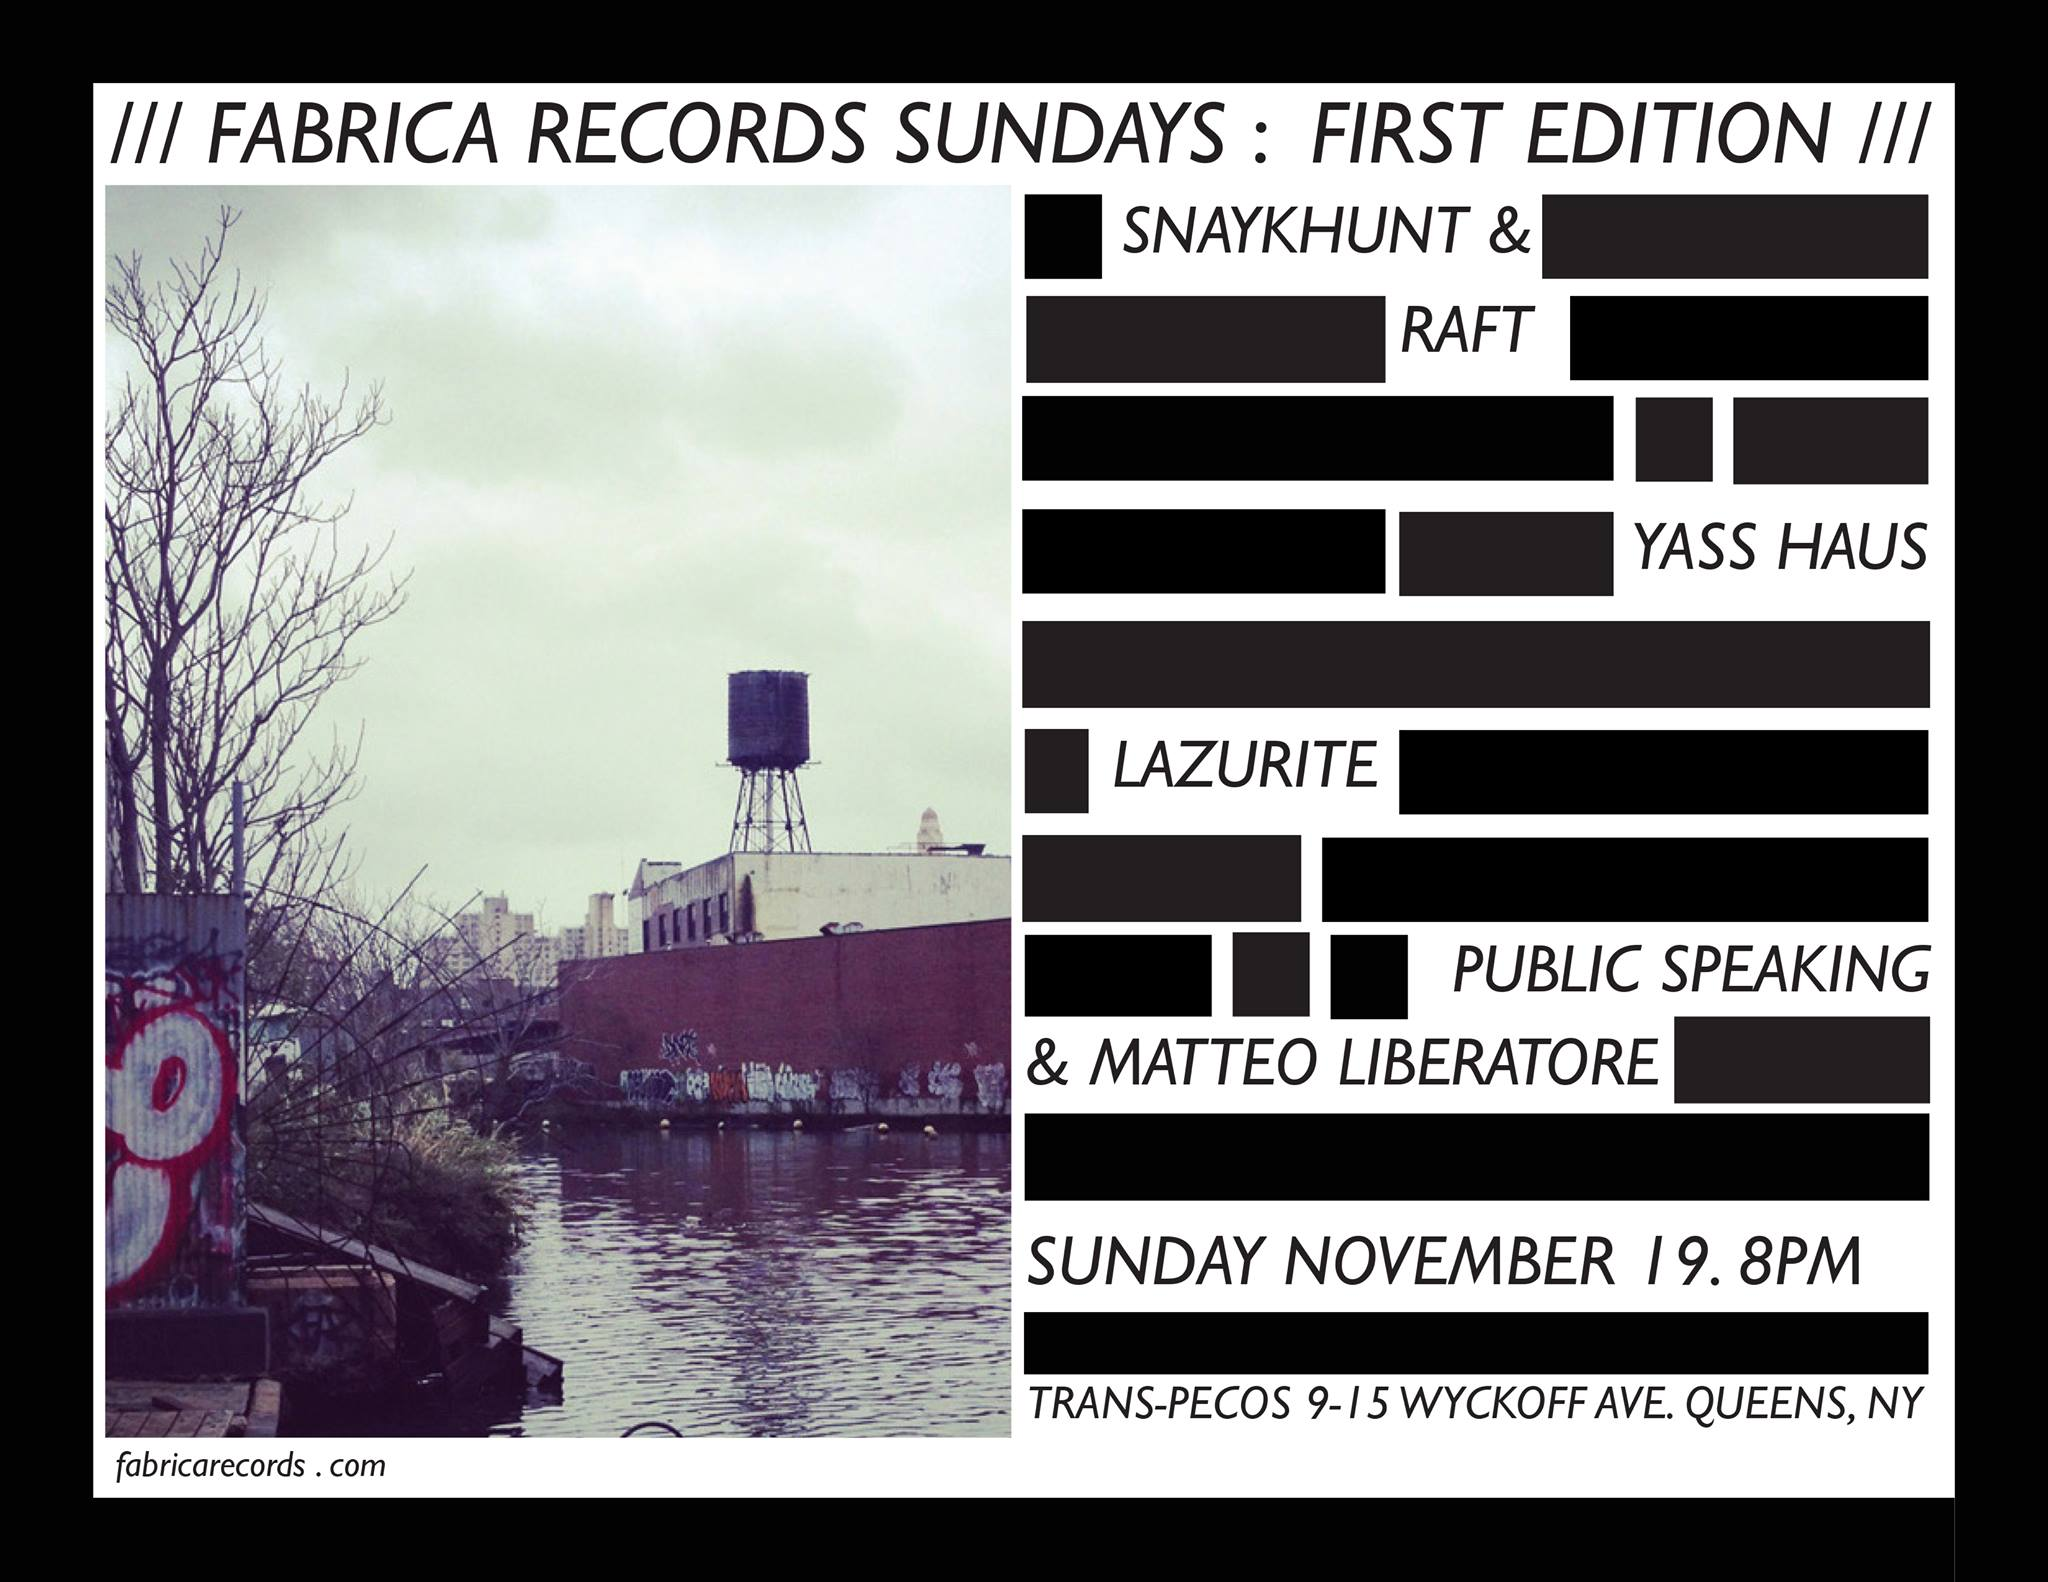 "FABRICA RECORDS  Sundays: First Edition This the first edition of a monthly series presented by independent experimental label Fabrica Records to be held at Trans-Pecos in Ridgewood, NY.  Line-up:  PUBLIC SPEAKING + MATTEO LIBERATORE (Duo Performance)  publicspeaking.bandcamp.com   http://www.matteoliberatore.com/   Public Speaking is the solo project of Brooklyn sound artist and songwriter Jason Anthony Harris. He uses voice, objects, and electronics, as well as traditional instrumentation to make soulful noise music. Harris balances adventurous methods with an intimate compositional aesthetic. He has released material on Fabrica Records, Tape Drift, Already Dead Tapes, and Floordoor Records.  Matteo Liberatore is a boundary-pushing guitarist and composer from Italy, living in Brooklyn, NY. His avant-garde style explores the crossroads of free improvisation, contemporary classical music and noise using guitar and electronics. Matteo's current solo project draws from his early experience of life in America - the rawness of a world where incredible art and expression flourish alongside money market-driven politics and where tense capitalistic ambition reigns supreme. Matteo's sound and performance is abstract... deconstructing sound, expectations and beauty in form.  LAZURITE  lazurite.bandcamp.com   Megan Moncrief makes videos, installations, and prints, and plays music and noise as Lazurite (her solo project) with an ever-evolving bunch of collaborators and co-conspirators. Her sounds have been released by Fabrica Records, Whatever Forever, Buh Records Peru, Ilse Music, Boo Tapes,Obsolete Units, Crumb Dicks, and her own label Popular Chant (still in its infancy). She is involved with the LOXM - Ladies of Experimental Music collective, and was director and curator of the now-defunct Brewer's Mansion Gallery.  YAAS HAUS  soundcloud.com/madamwest/dans-song   facebook.com/wsabifox/videos/1302635483181145/   A brand new project from Brooklyn locals Sophie Chernin (Madam West) and Jennae Santos (Wsabi Fox, BIG FIGMENT), Yaas Haus is ""EDM performed by two humans who have never liked or listened to EDM."" The duo builds live loops with guitar, vocals, percussion, room sounds and audience contributions as their primary media.  SNAYKHUNT + RAFT (Duo Performance)  soundcloud.com/williamyorkstanton/snaykhunt-raft-excerpt   http://snaykhunt.tumblr.com/   http://raftmusic.tumblr.com/   Snaykhunt is the music project of Kate Henderson/Thermos Unigarde, a drummer and electronic musician performing solo as well as with RAFT/Pat Noecker, K0Ks (with Megan Moncreif of Lazurite) and Limax Maximus (with Robert Pepper of Pas Musique). Henderson is the founder of LOXM, a series curating female experimental projects, and writes for Tom Tom Magazine.  RAFT is the sound and music exploration of Pat Noecker. He has been exploring composition through IOS apps and the potentiality of crowd-sourced collage since 2012. He employs the cell phone, text messaging, loopers and electronics in order to create his particular brand of ""audience-generated"" sonic architecture. Noecker has performed as a member of Liars, These Are Powers, n0 things and with Janka Nabay and the Bubu Gang.   www.fabricarecords.com"